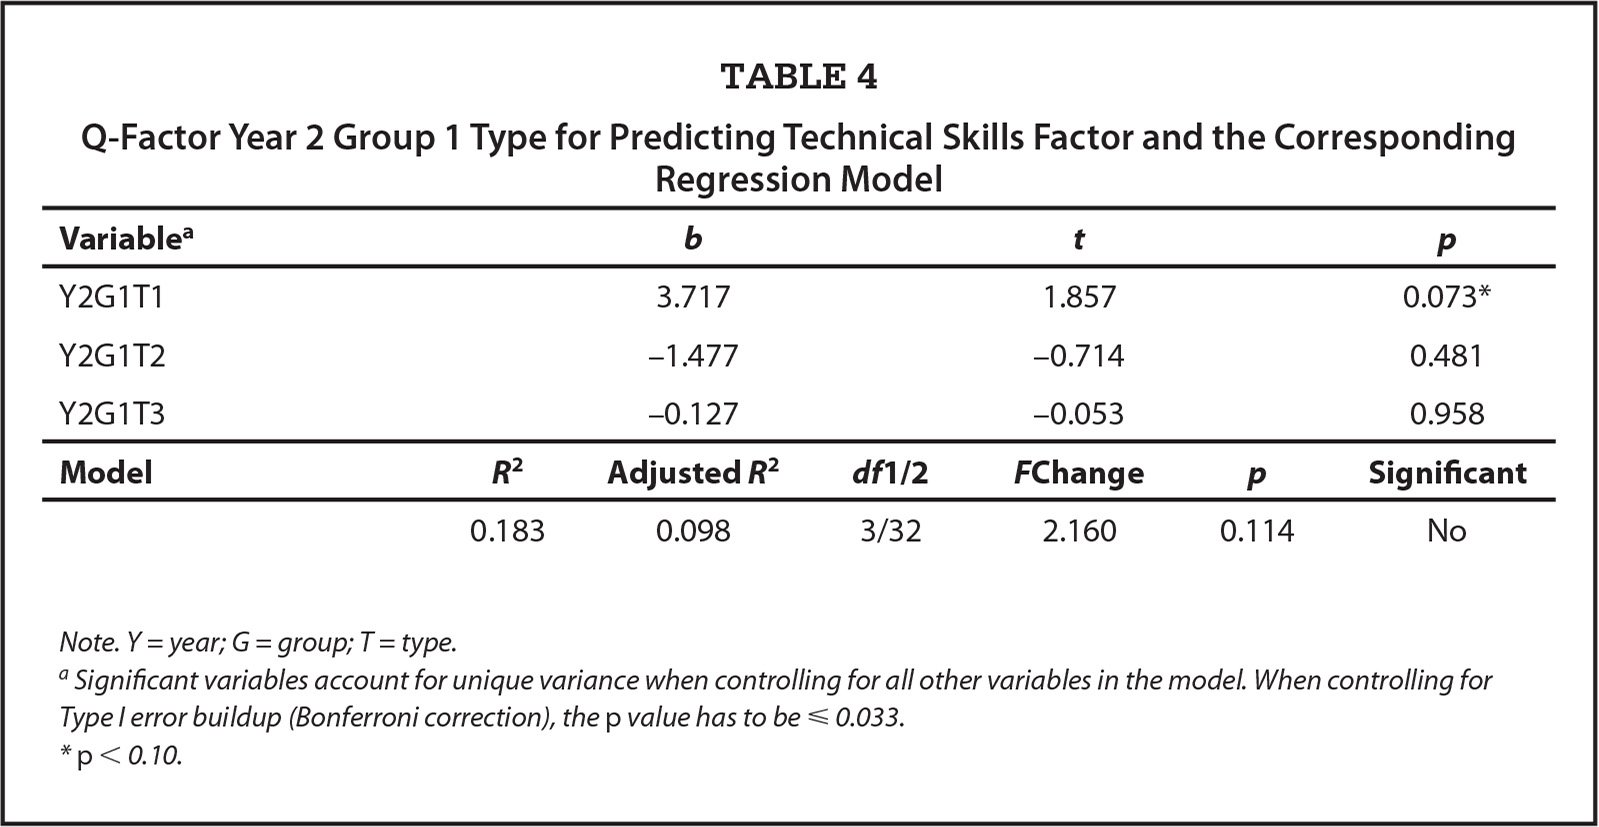 Q-Factor Year 2 Group 1 Type for Predicting Technical Skills Factor and the Corresponding Regression Model